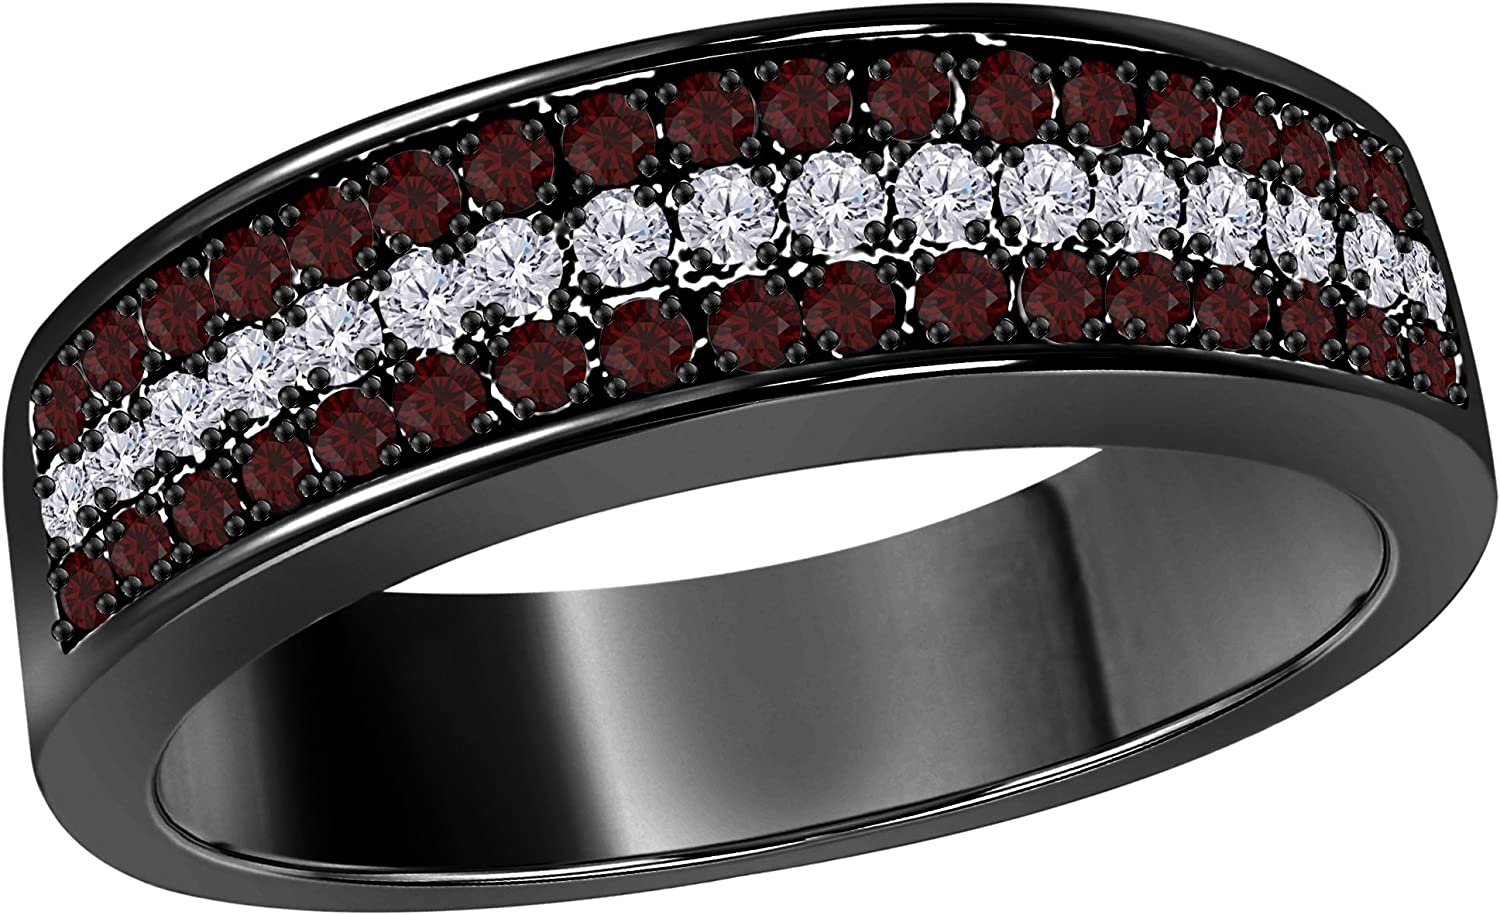 Silver Gems Factory 6mm 14K Black Gold Over 0.50 Ct Red Garnet /& White Cz Diamond Ring 3 Row Pave Half Eternity Mens Anniversary Wedding Band Ring